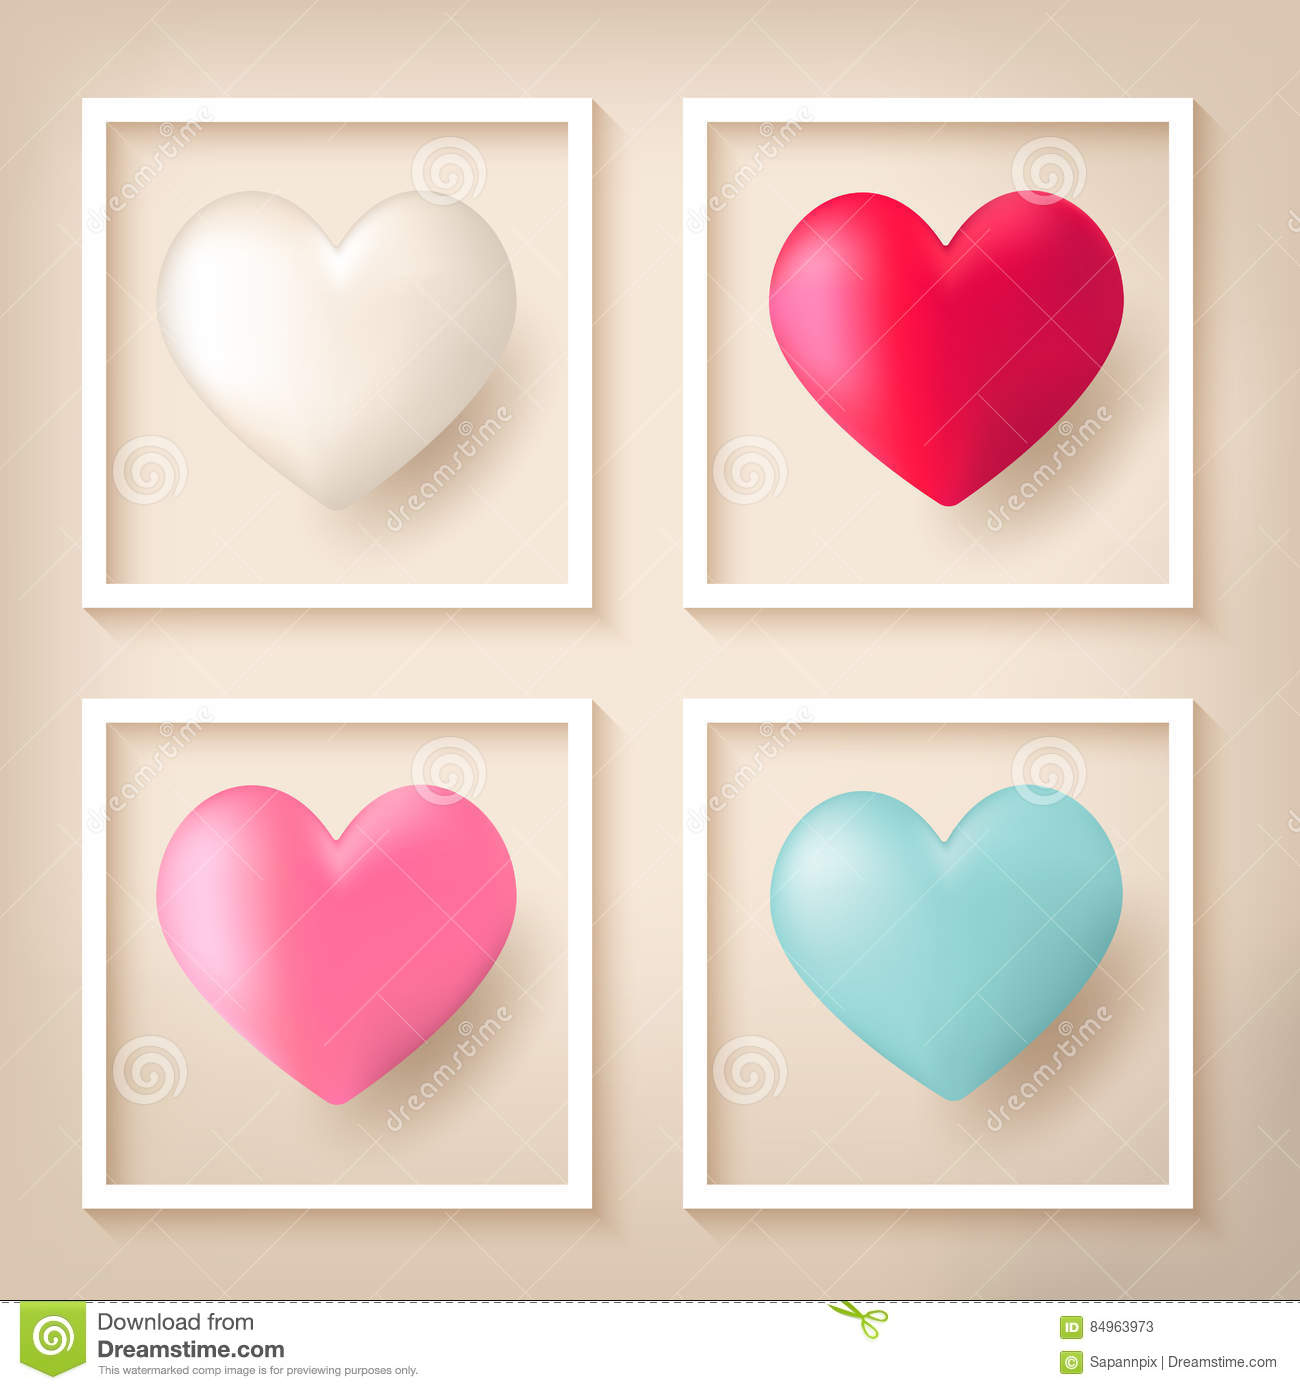 Heart Shape Balloons With Frames Stock Vector - Illustration of ...